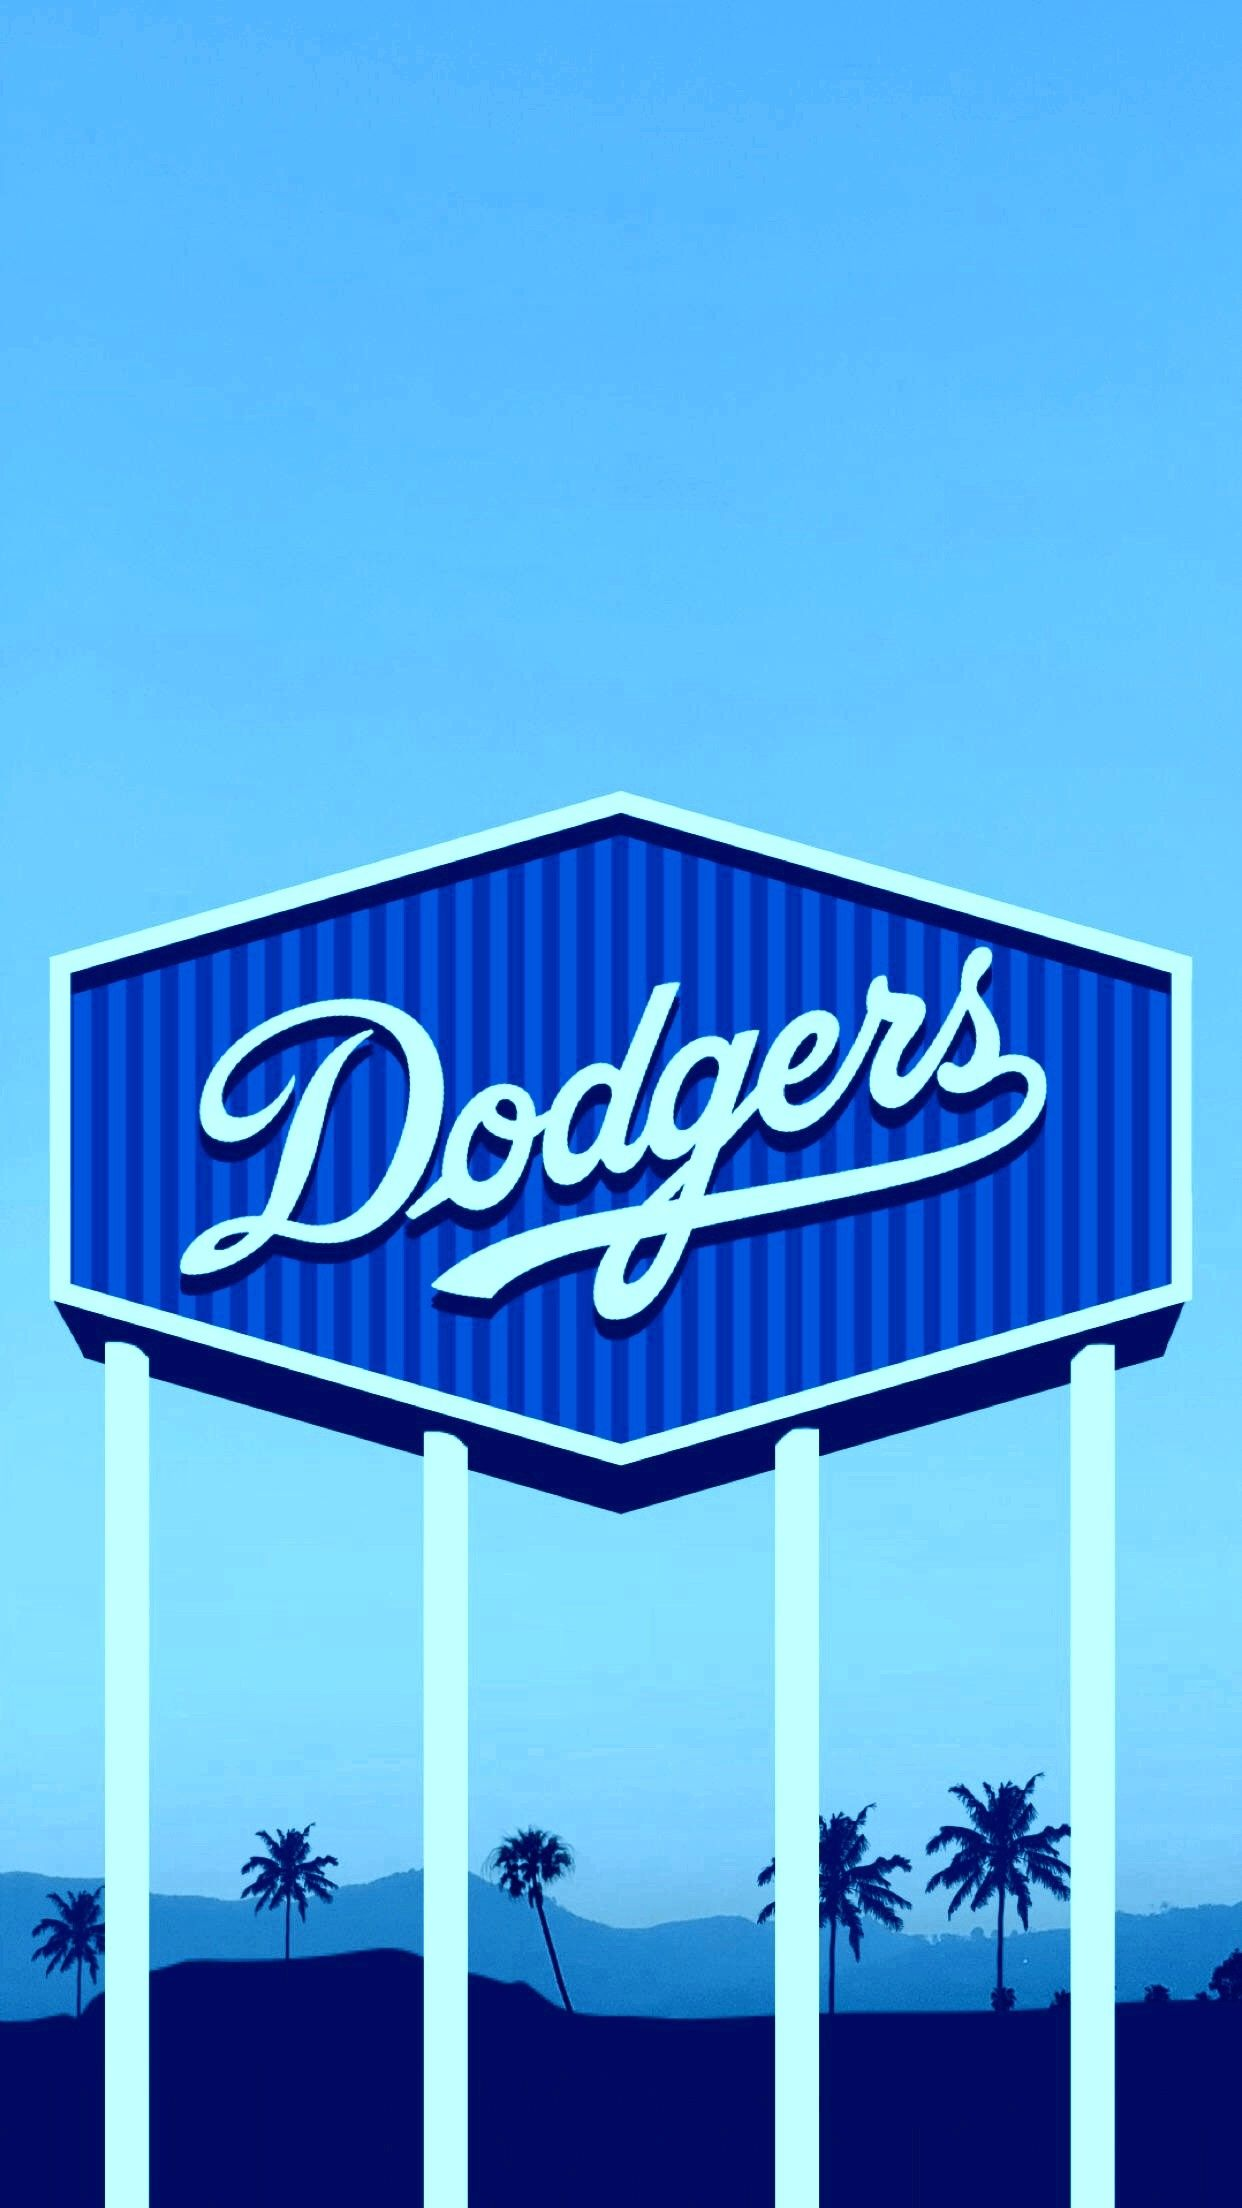 Los Angeles Dodgers Iphone Wallpaper In 2020 Dodgers Baseball Los Angeles Dodgers Dodgers